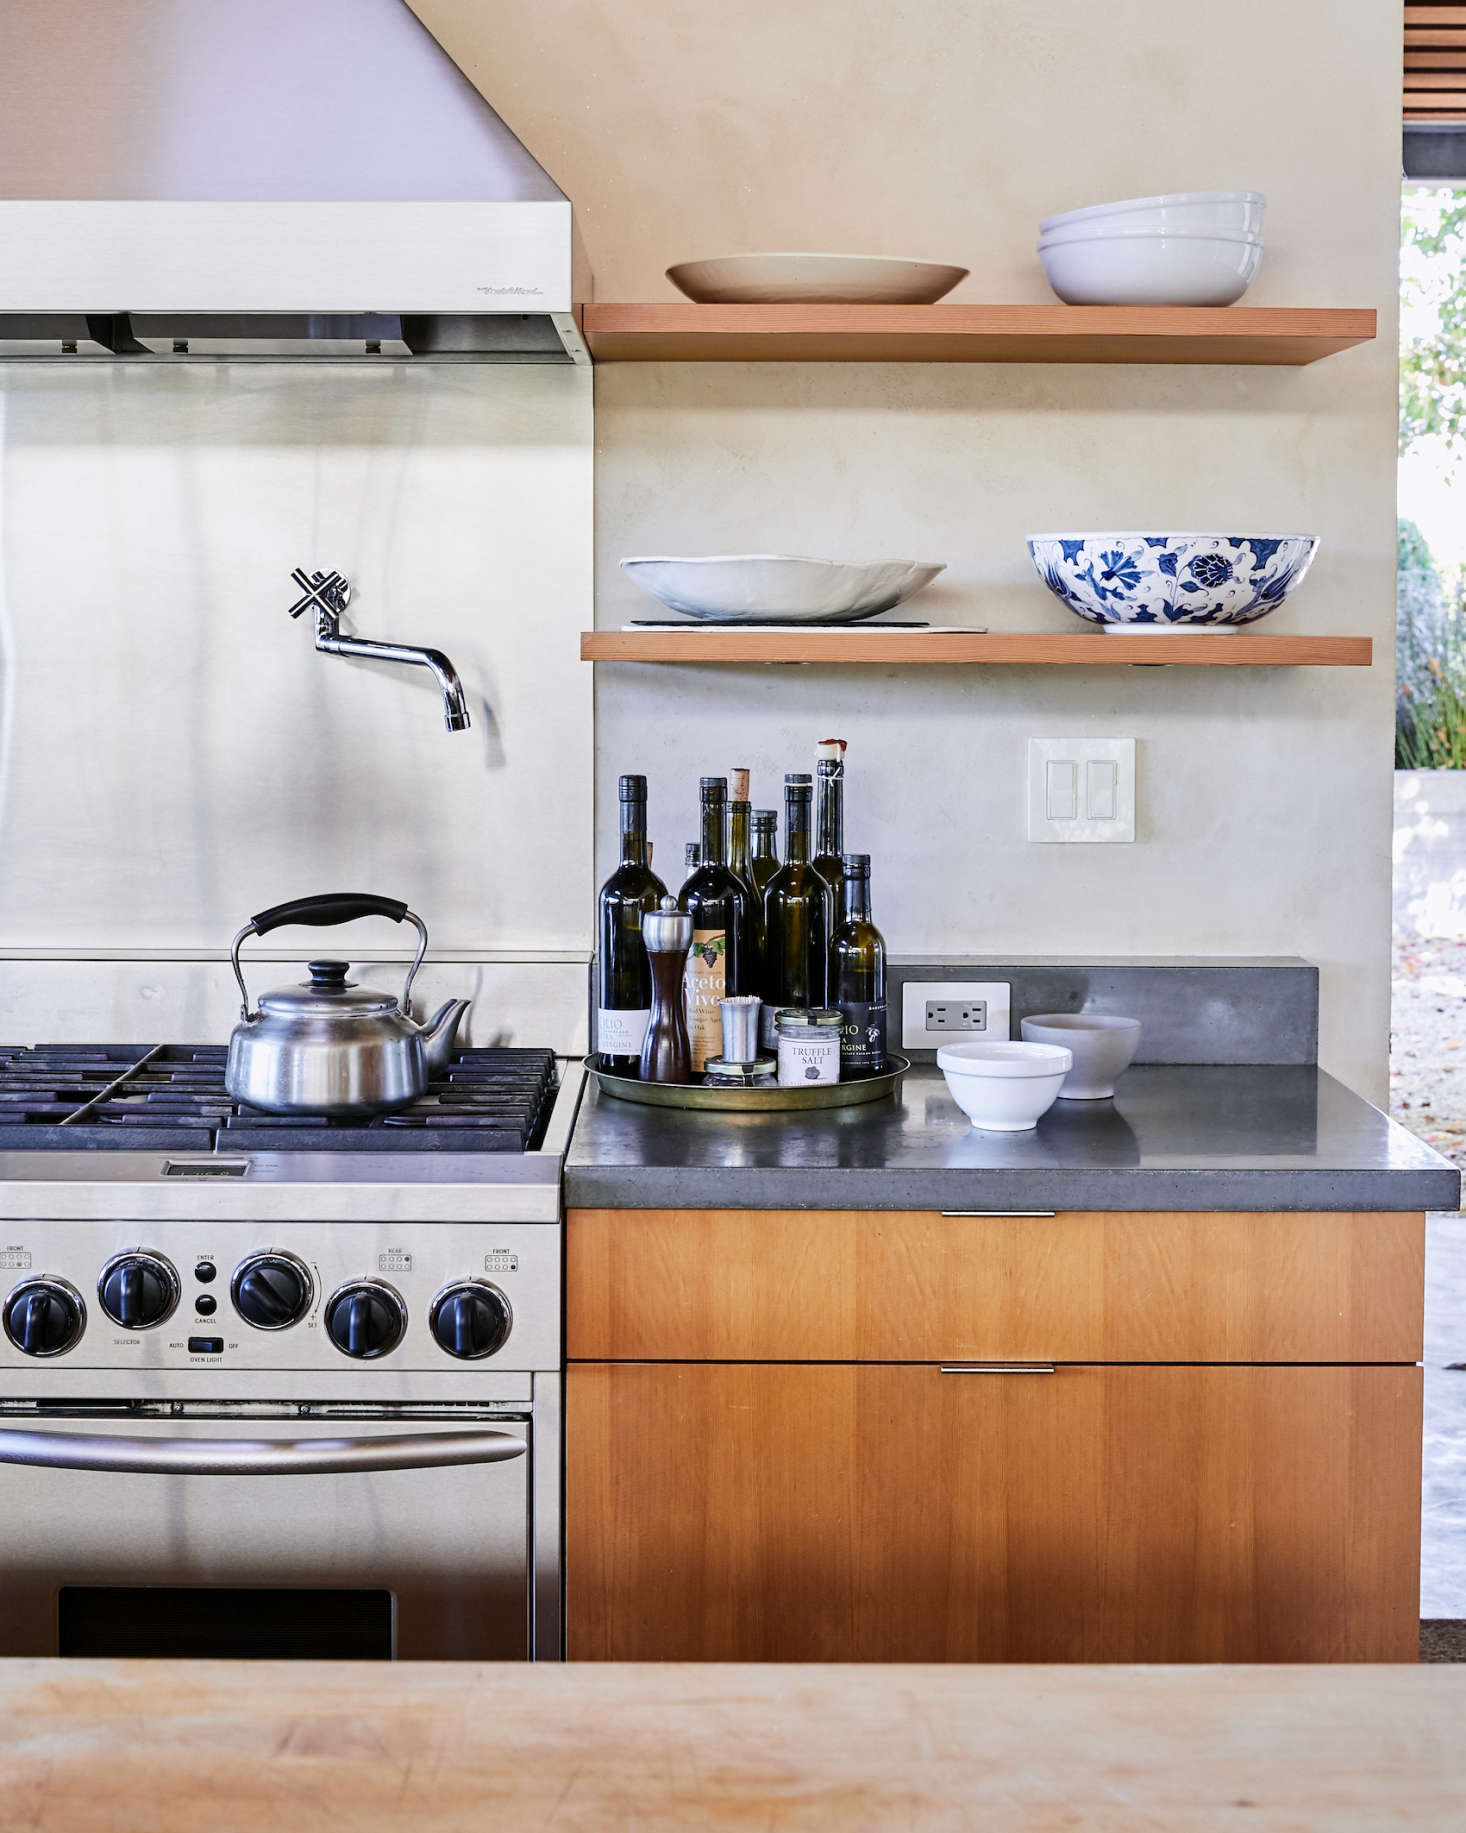 """The surrounding kitchen countertops are dark gray concrete. Within easy reach for cooking: Baker Lane Estate Tuscan Olive Oil ($)and Aceto Vivo vinegar ($). Of Baker Lane olive oils, the winemaker says, """"We don't make a lot, but it's really good.&#8"""